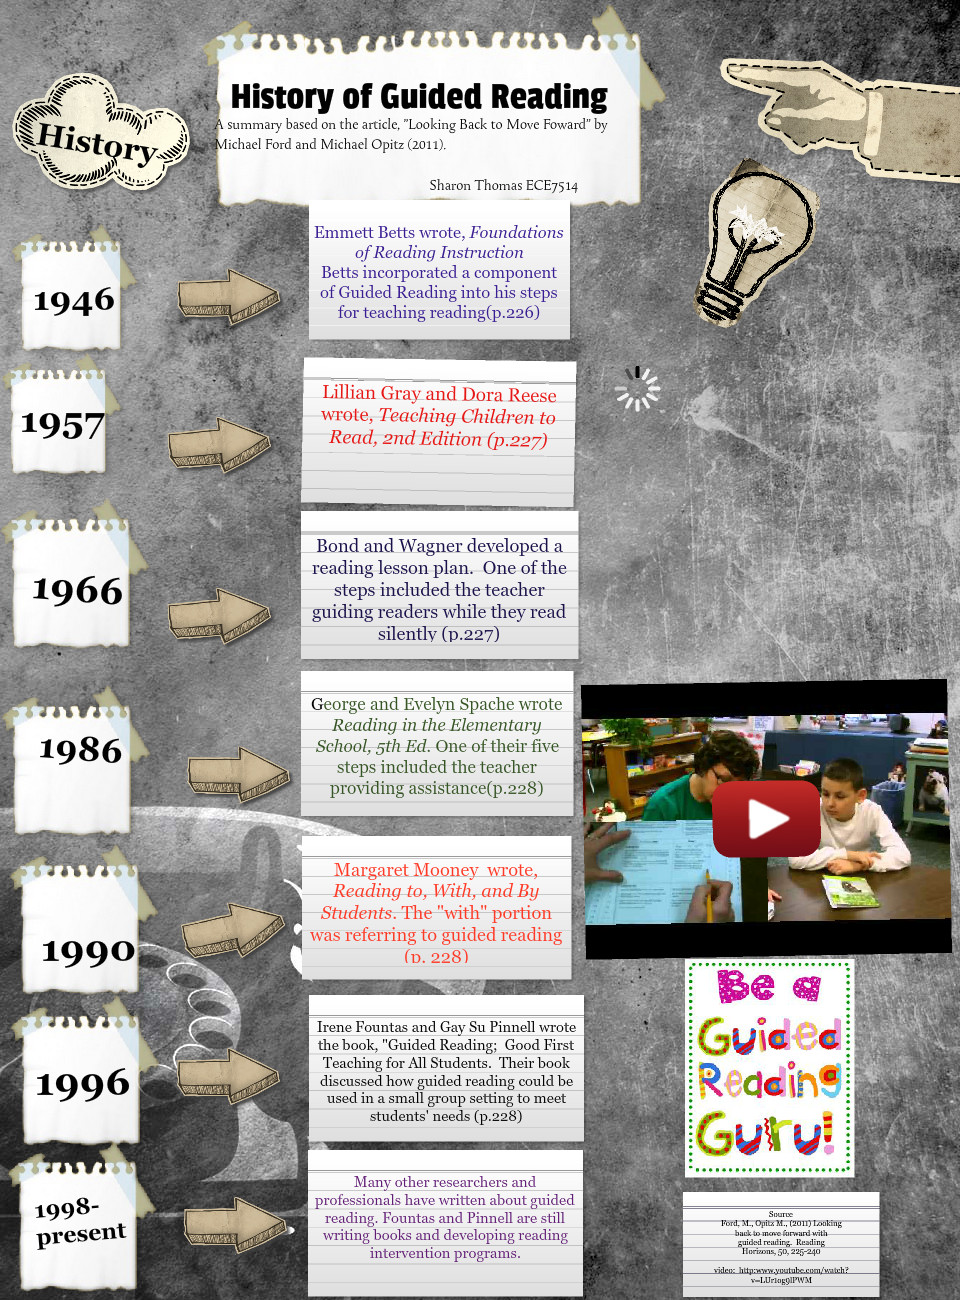 The History of Guided Reading